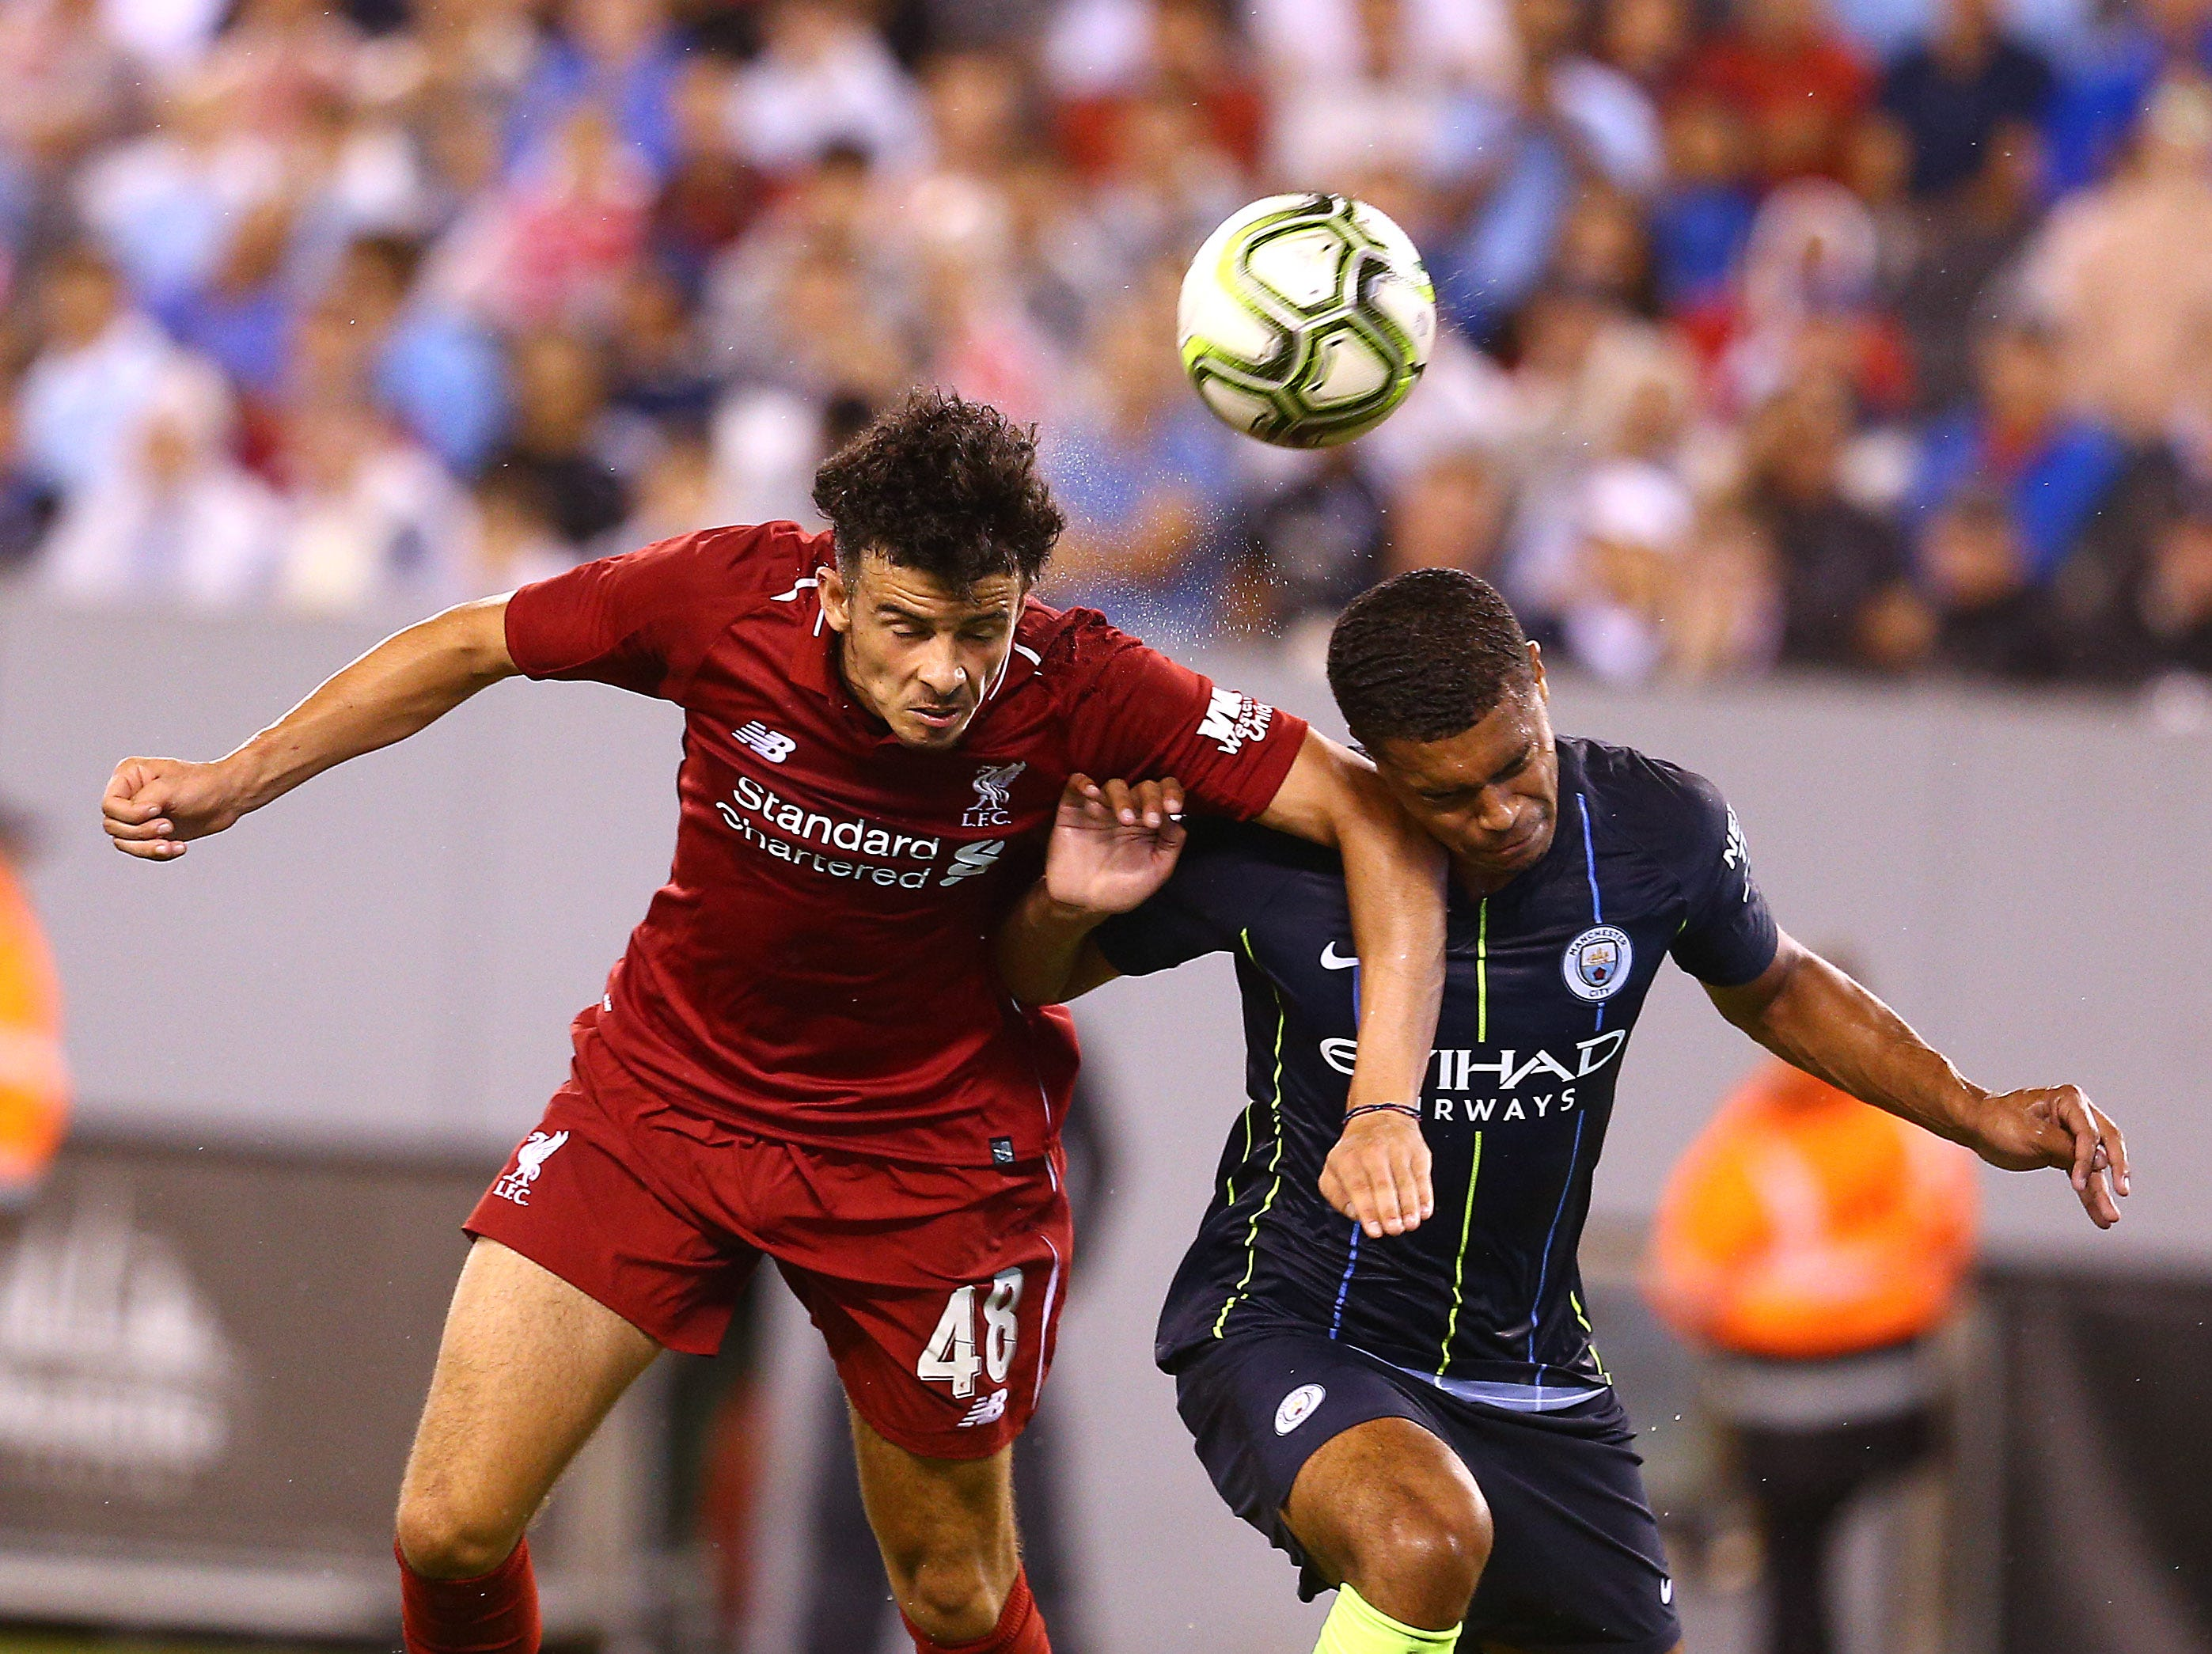 Premier League's Liverpool F.C. vs. Manchester City as part of the International Champions Cup at MetLife Stadium. July 25, 2018. East Rutherford, NJ